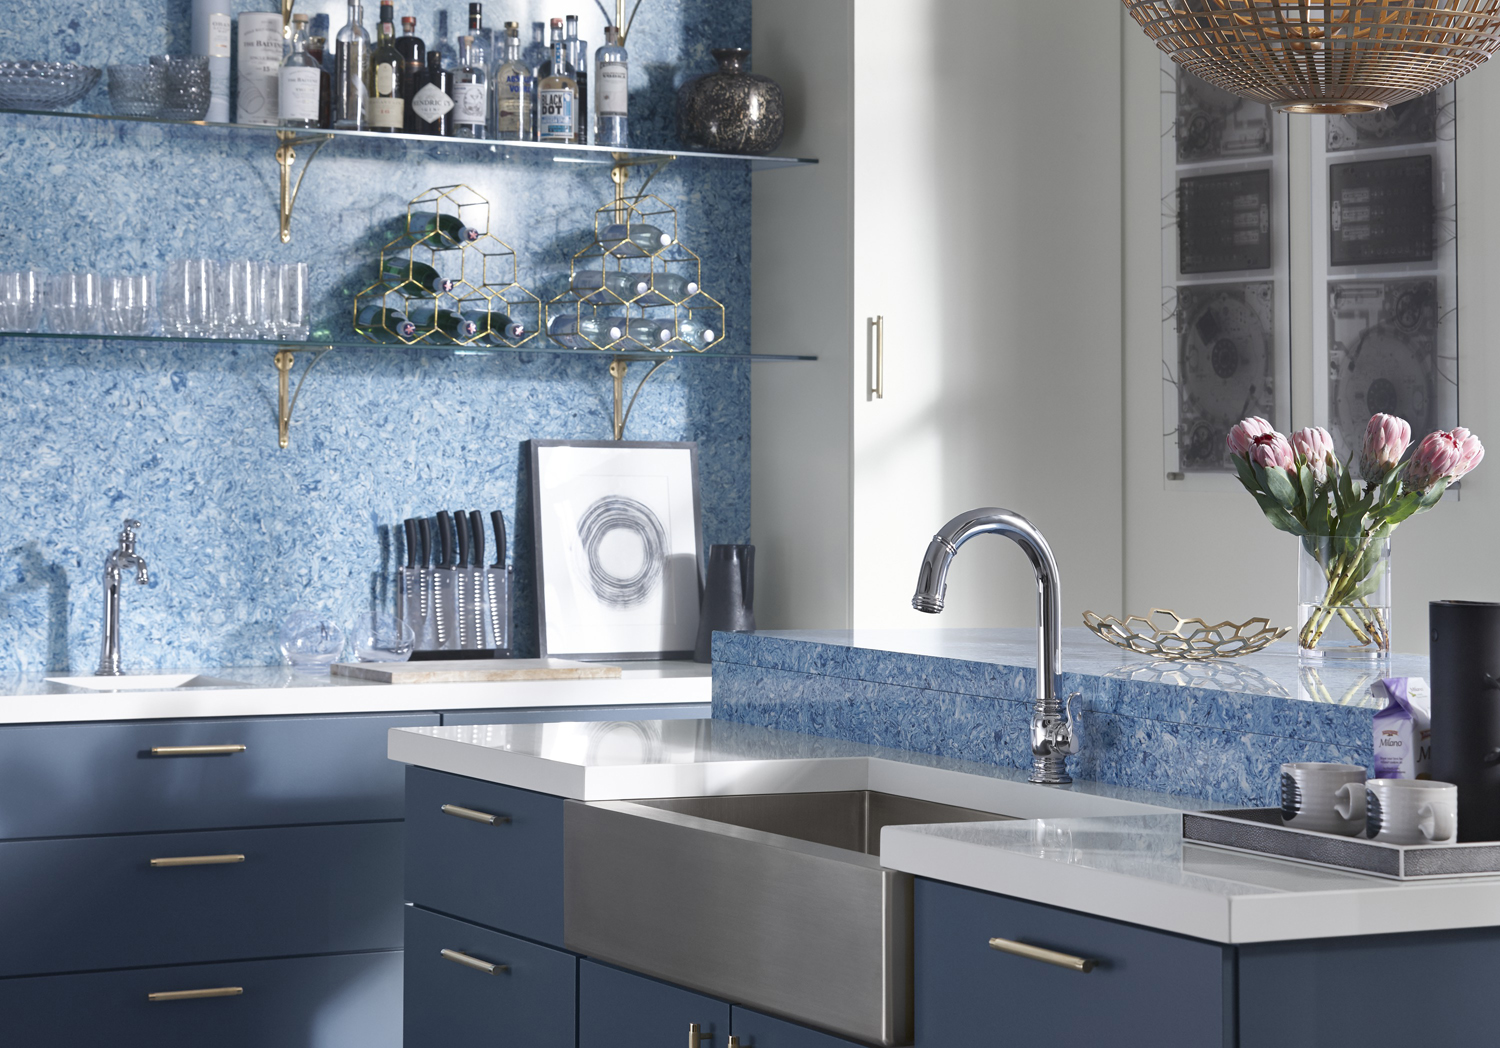 Strive® farmhouse kitchen sink     Beckon® touchless kitchen faucet     Artifacts® Gentleman's bar faucet     White Zeus Extreme countertop     Albedo wall and breakfast counter     Consider two sinks that coordinate without being identical matches. A full sink provides ample space for washing dishes while a prep sink is perfect for smaller tasks or bringing the whole family into the meal prep process.